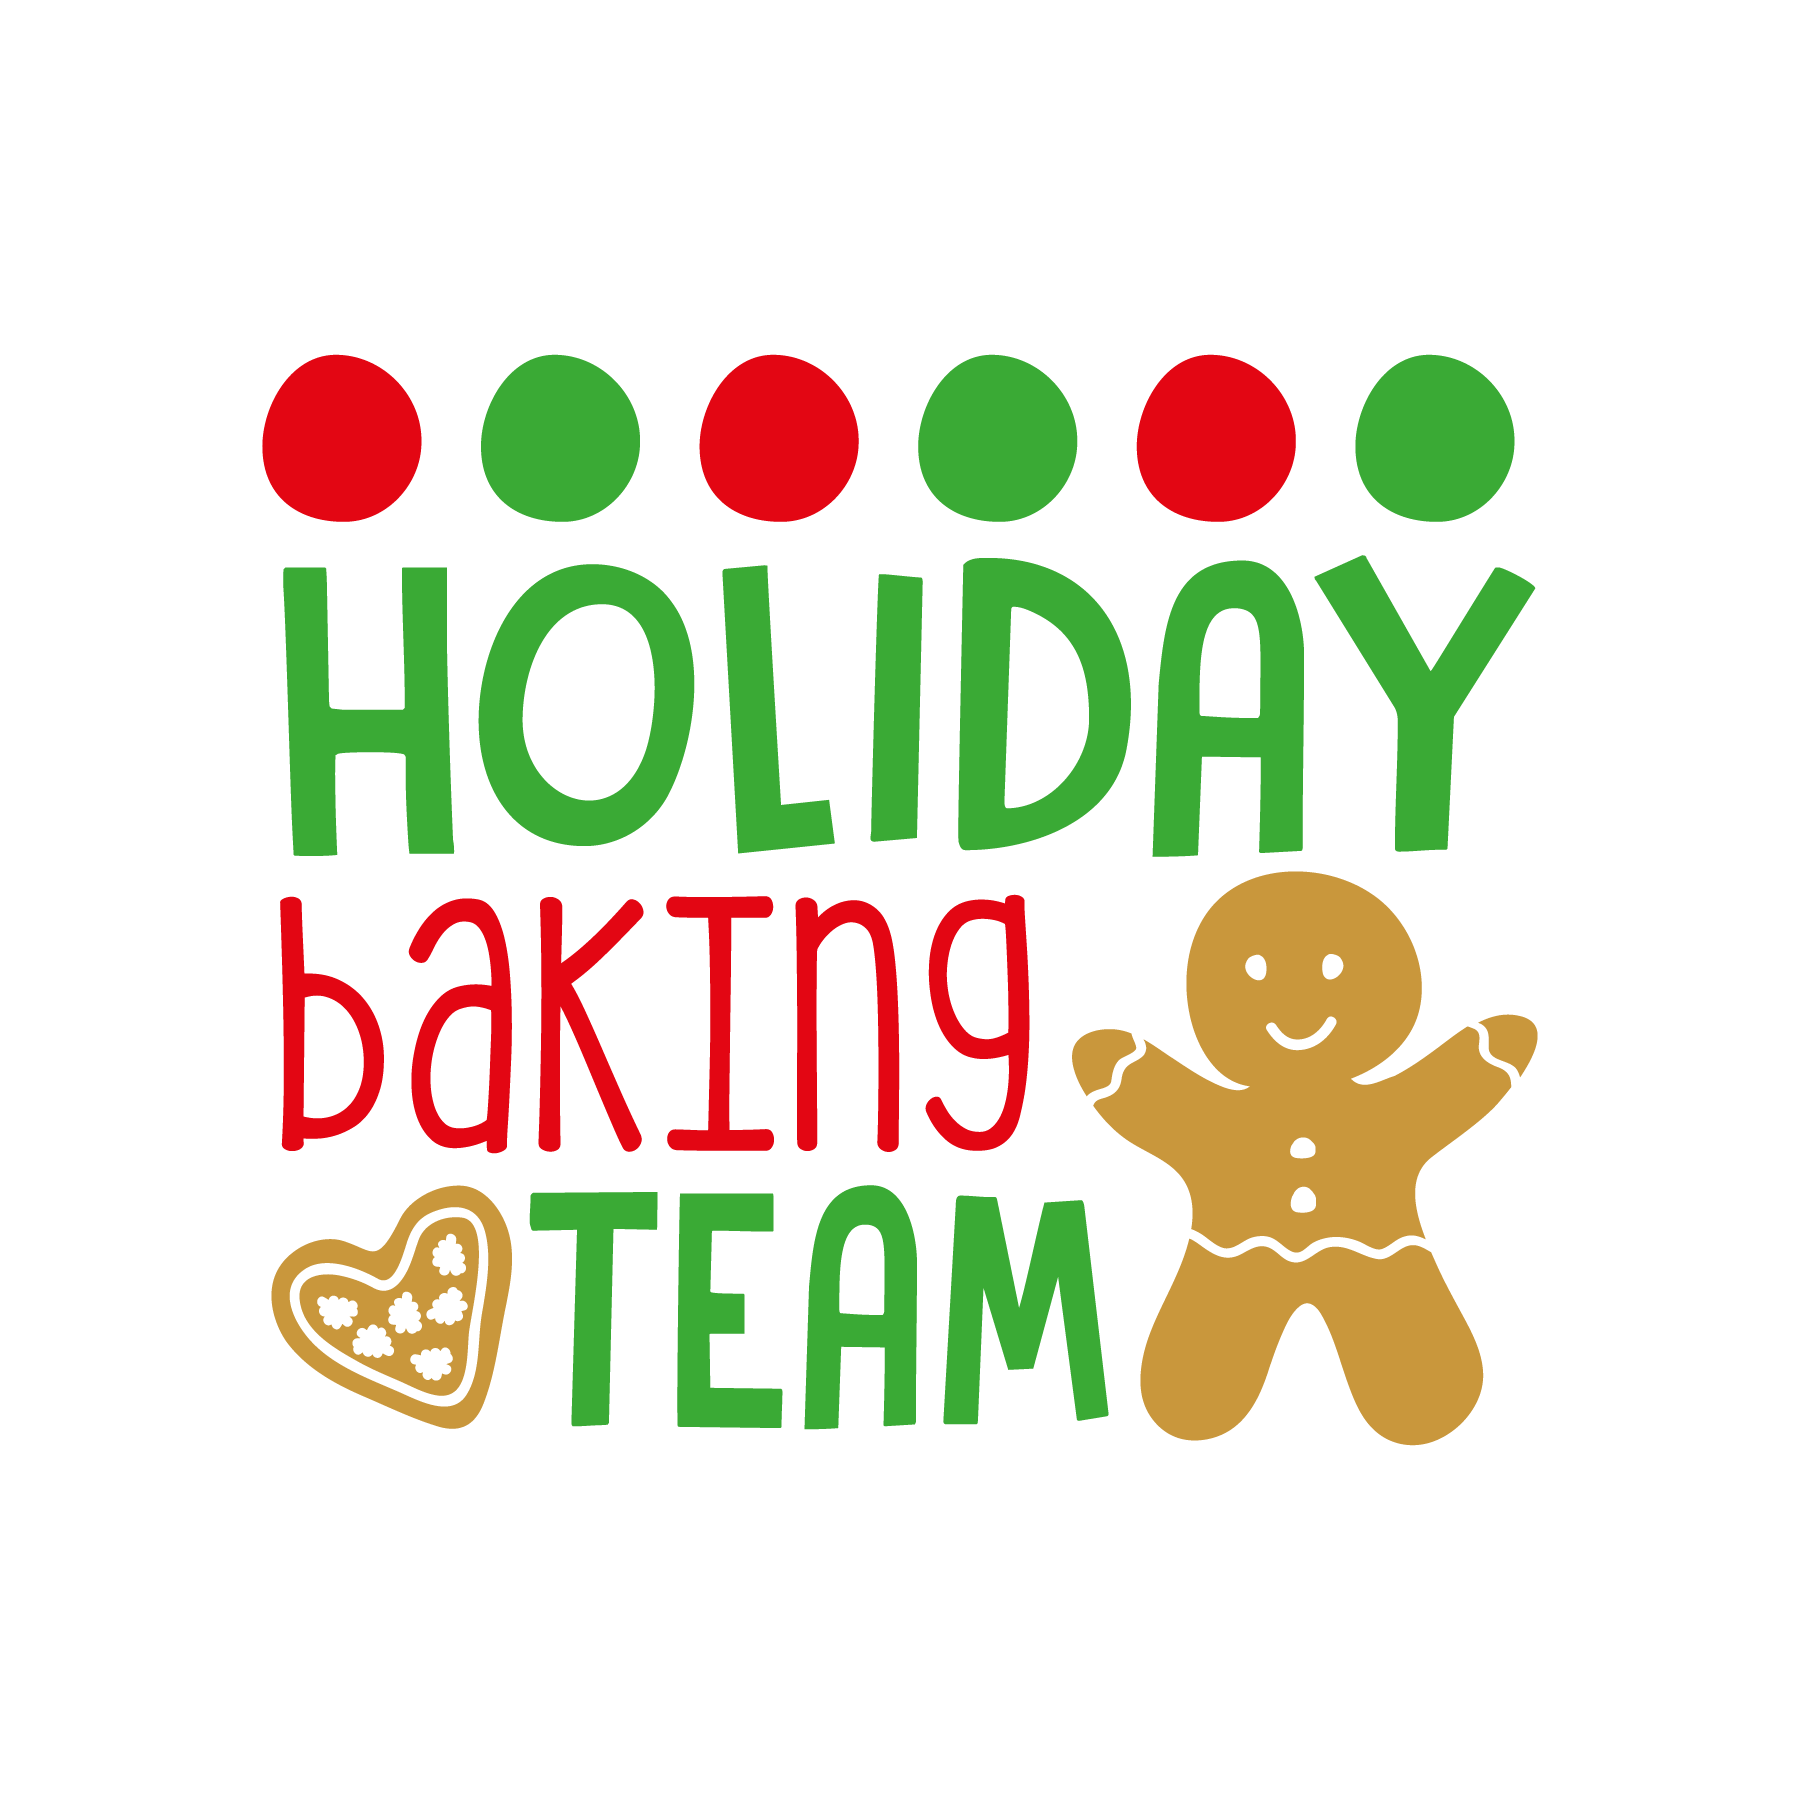 food holidays quotes christmas kitchen